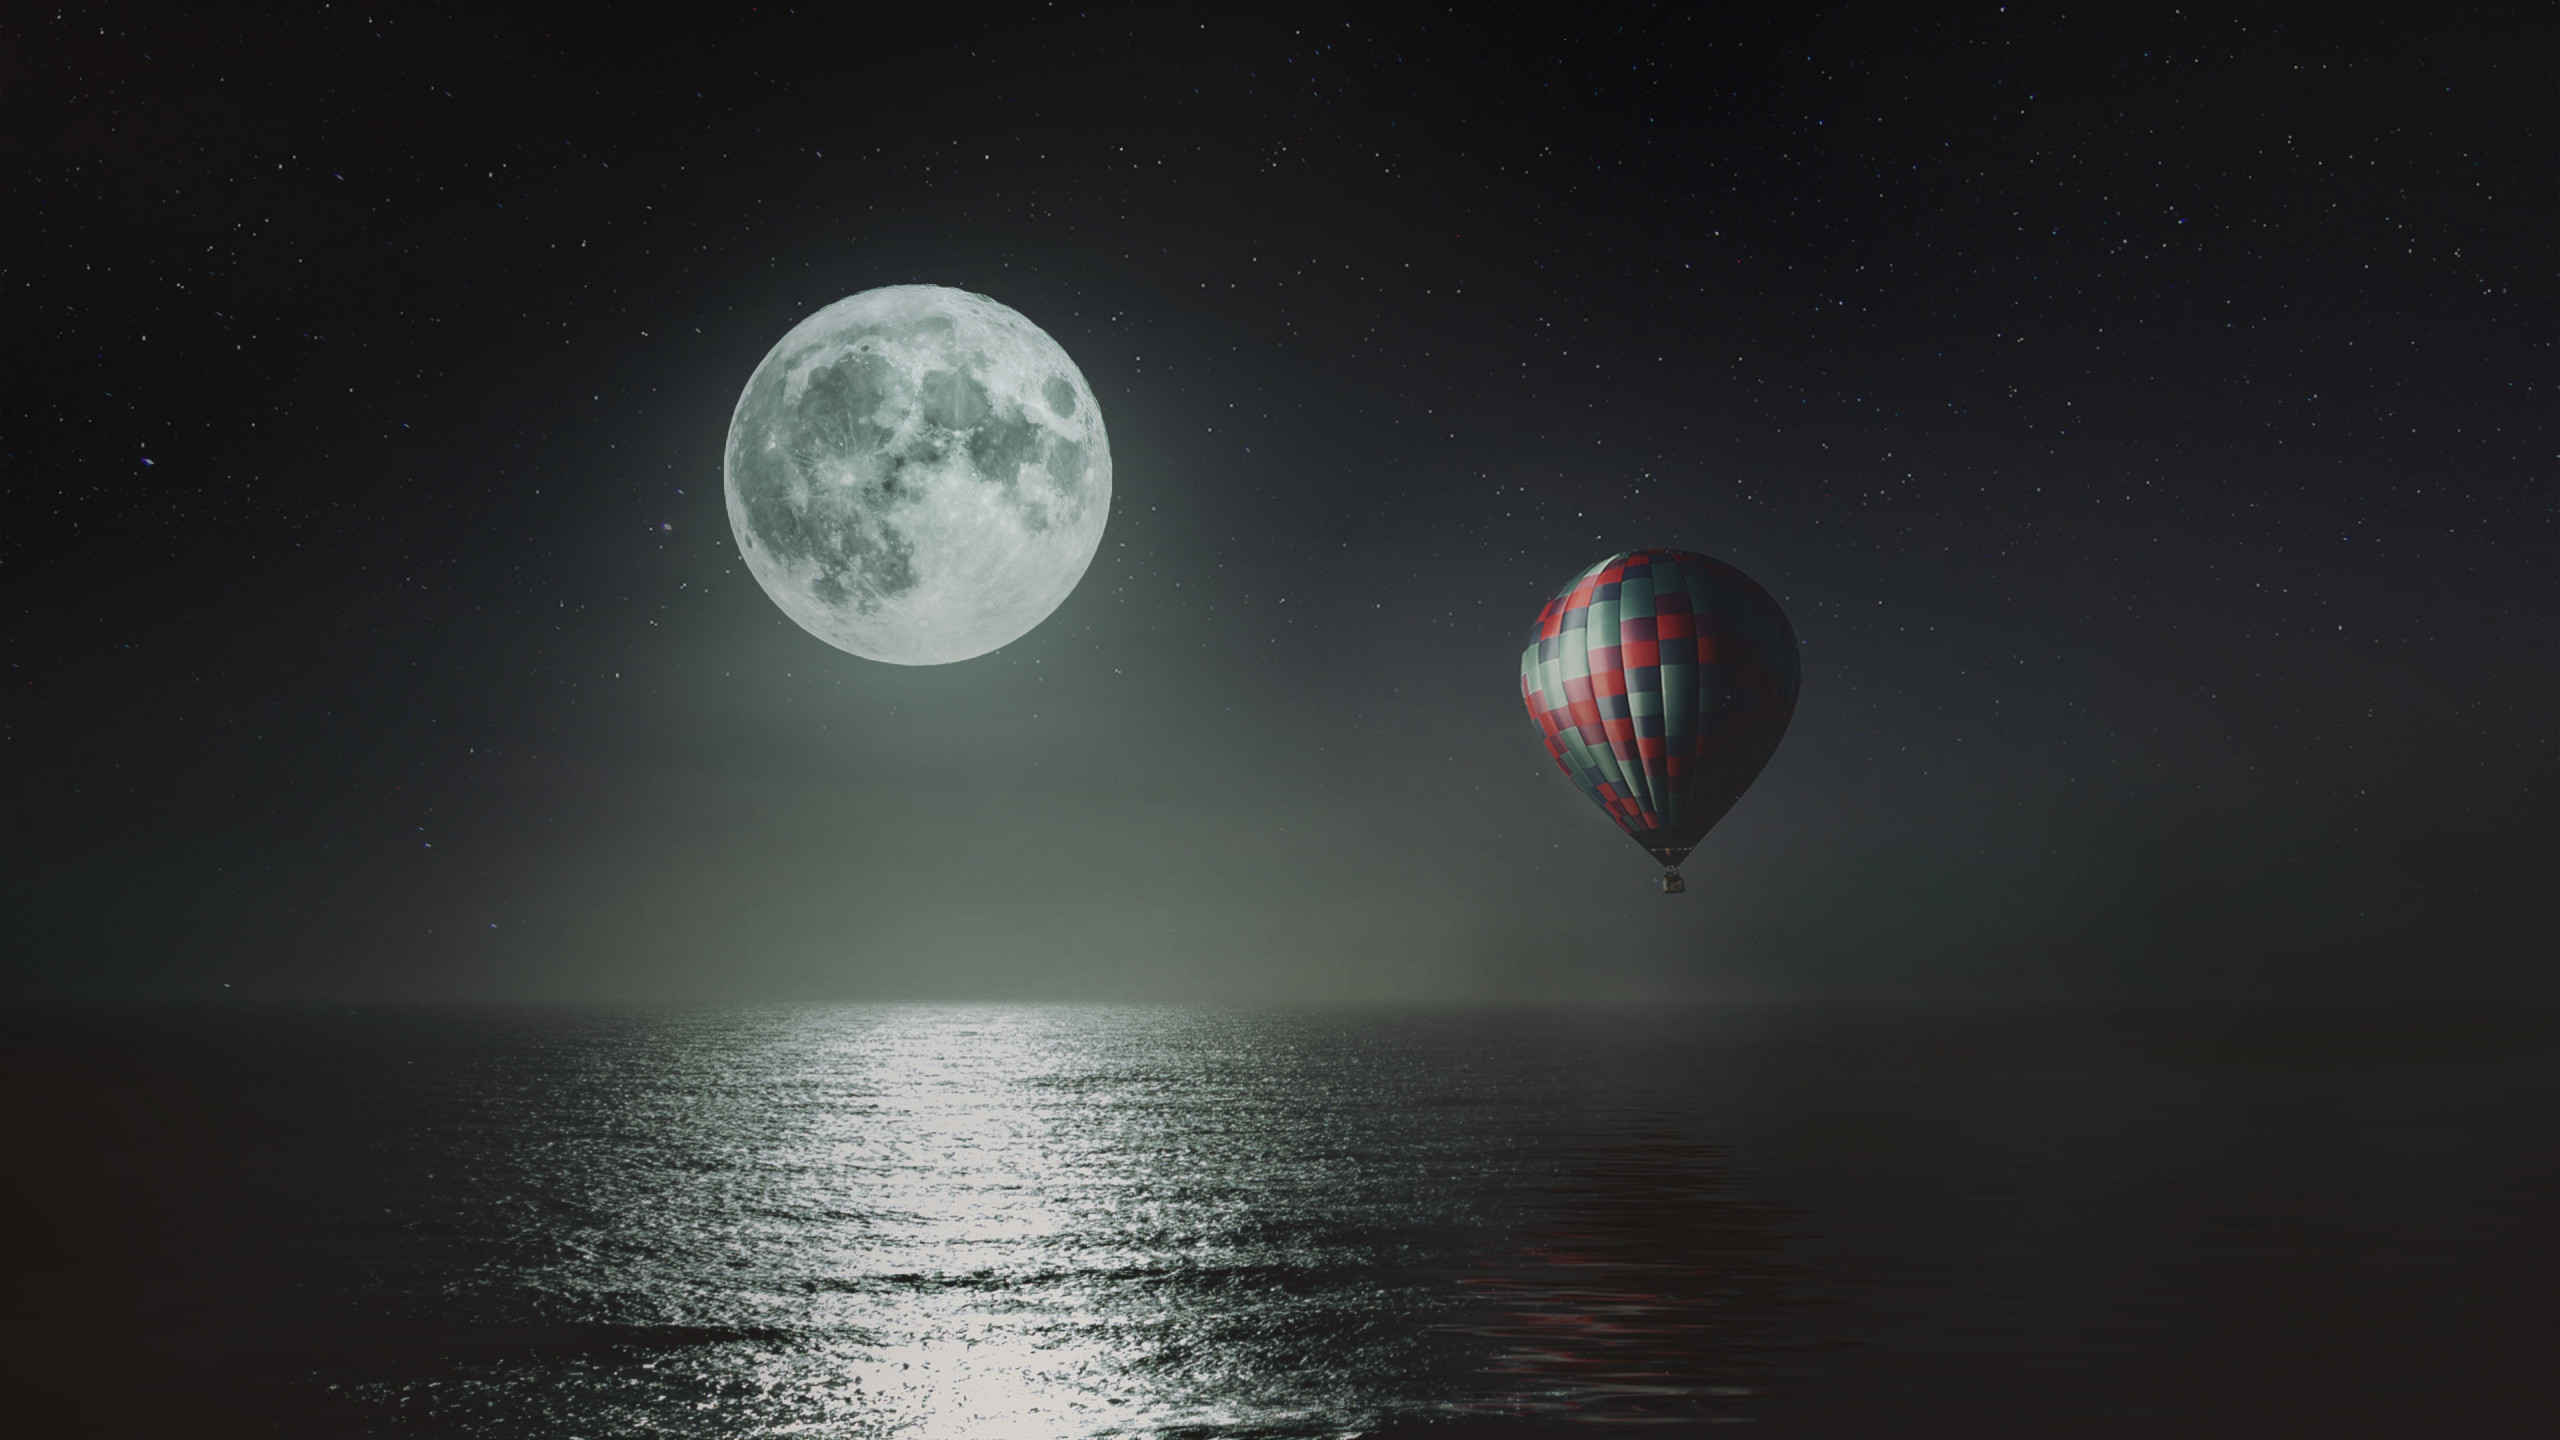 Hot air balloon over the night sky wallpaper 2560x1440